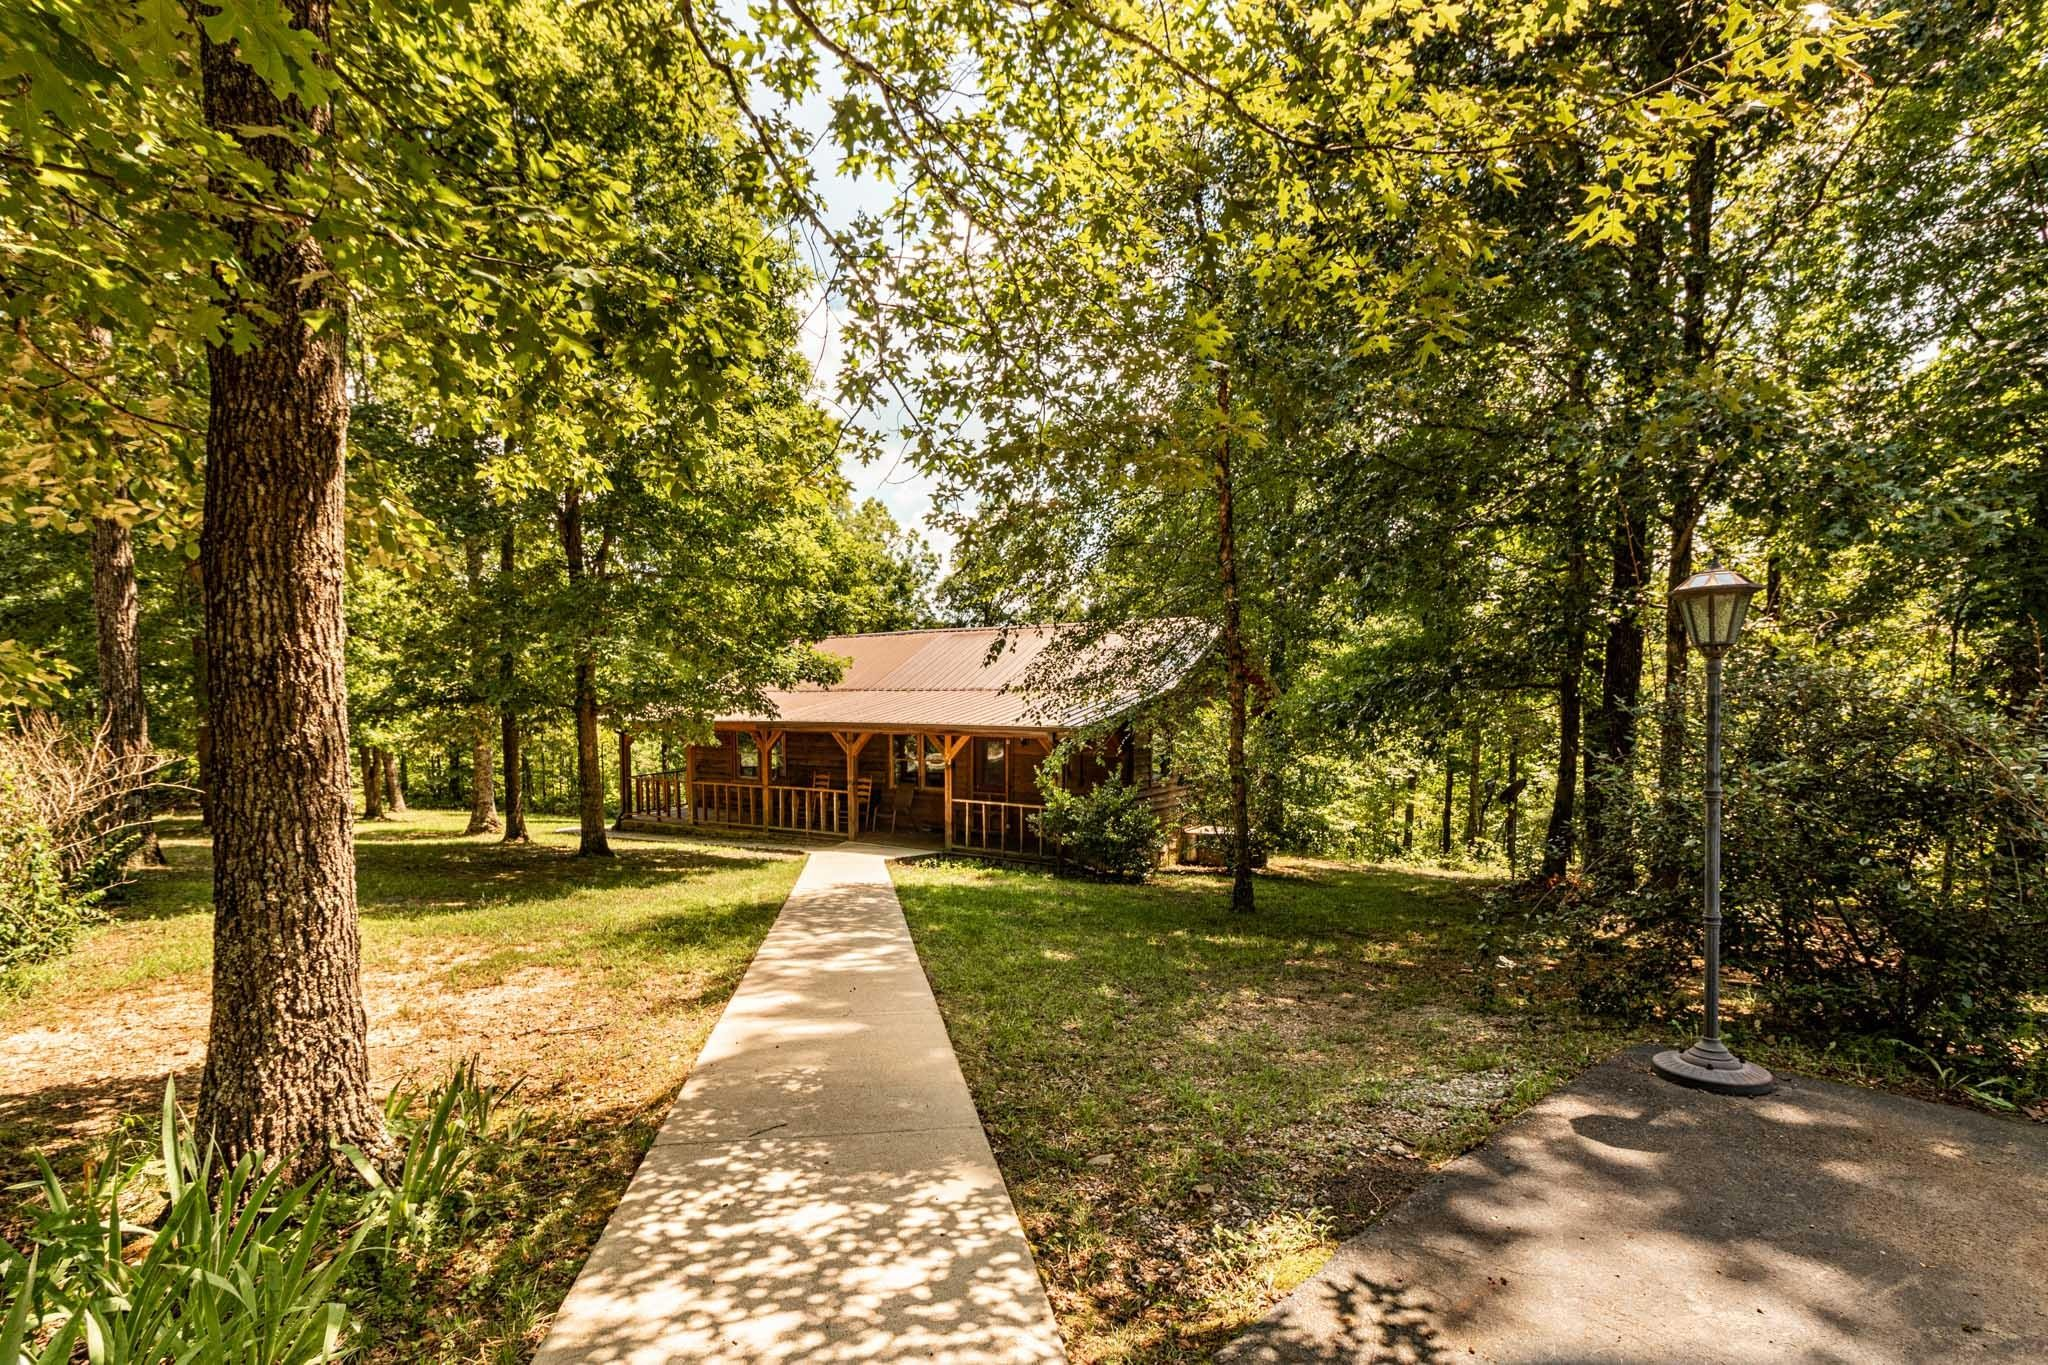 122 Emerald Dr, Hohenwald, TN 38462 - Hohenwald, TN real estate listing